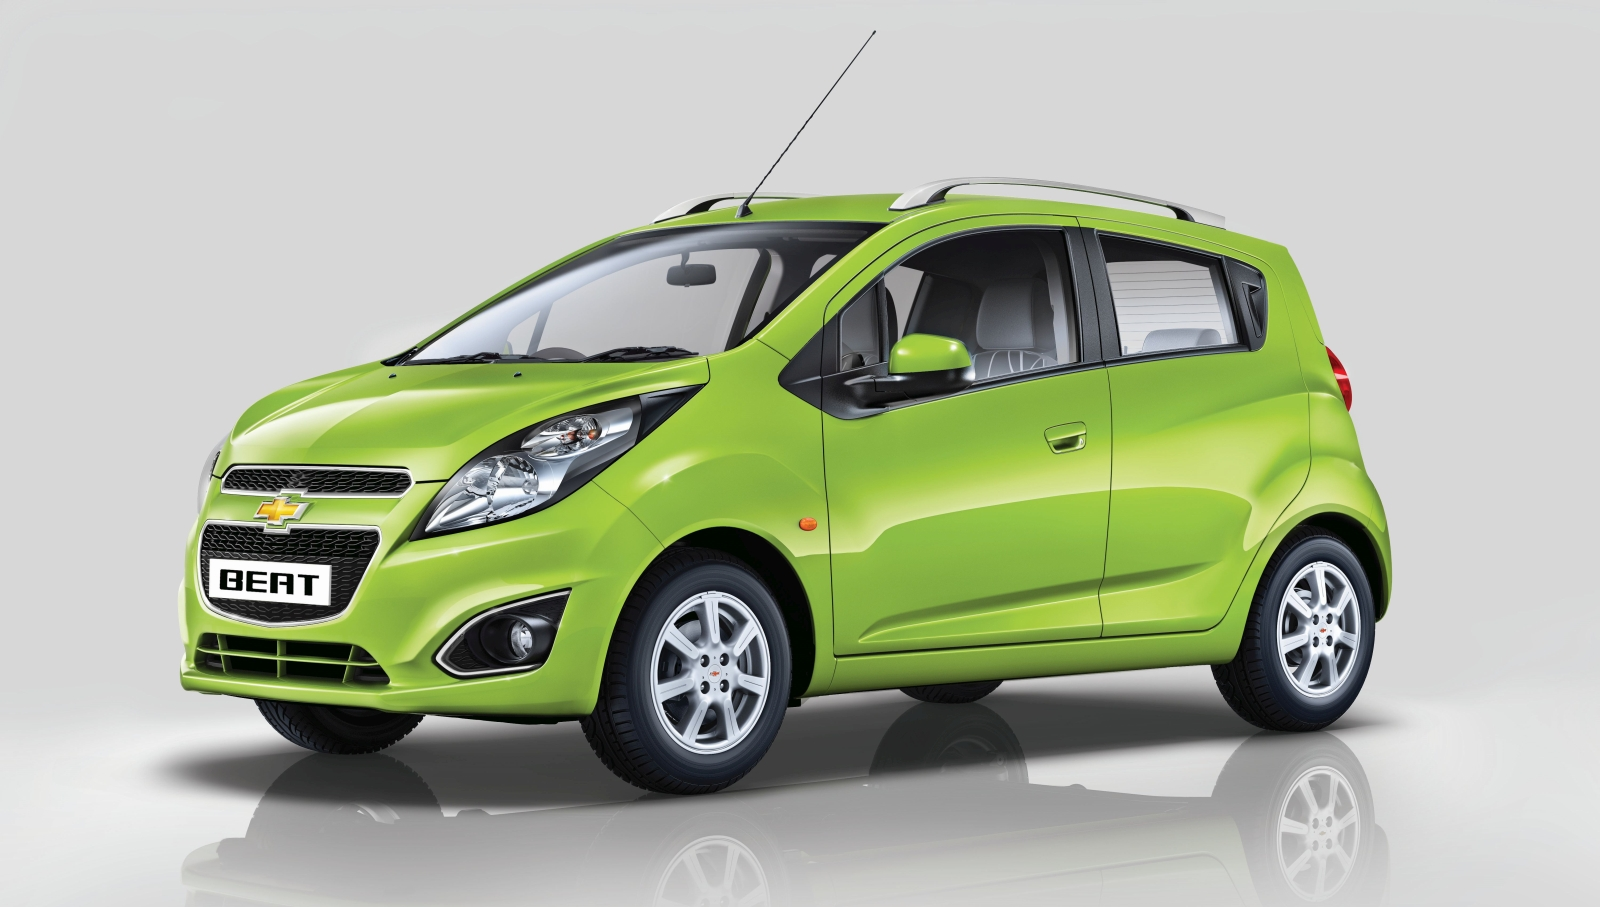 2016 Chevrolet Beat Launched With New Safety Features And